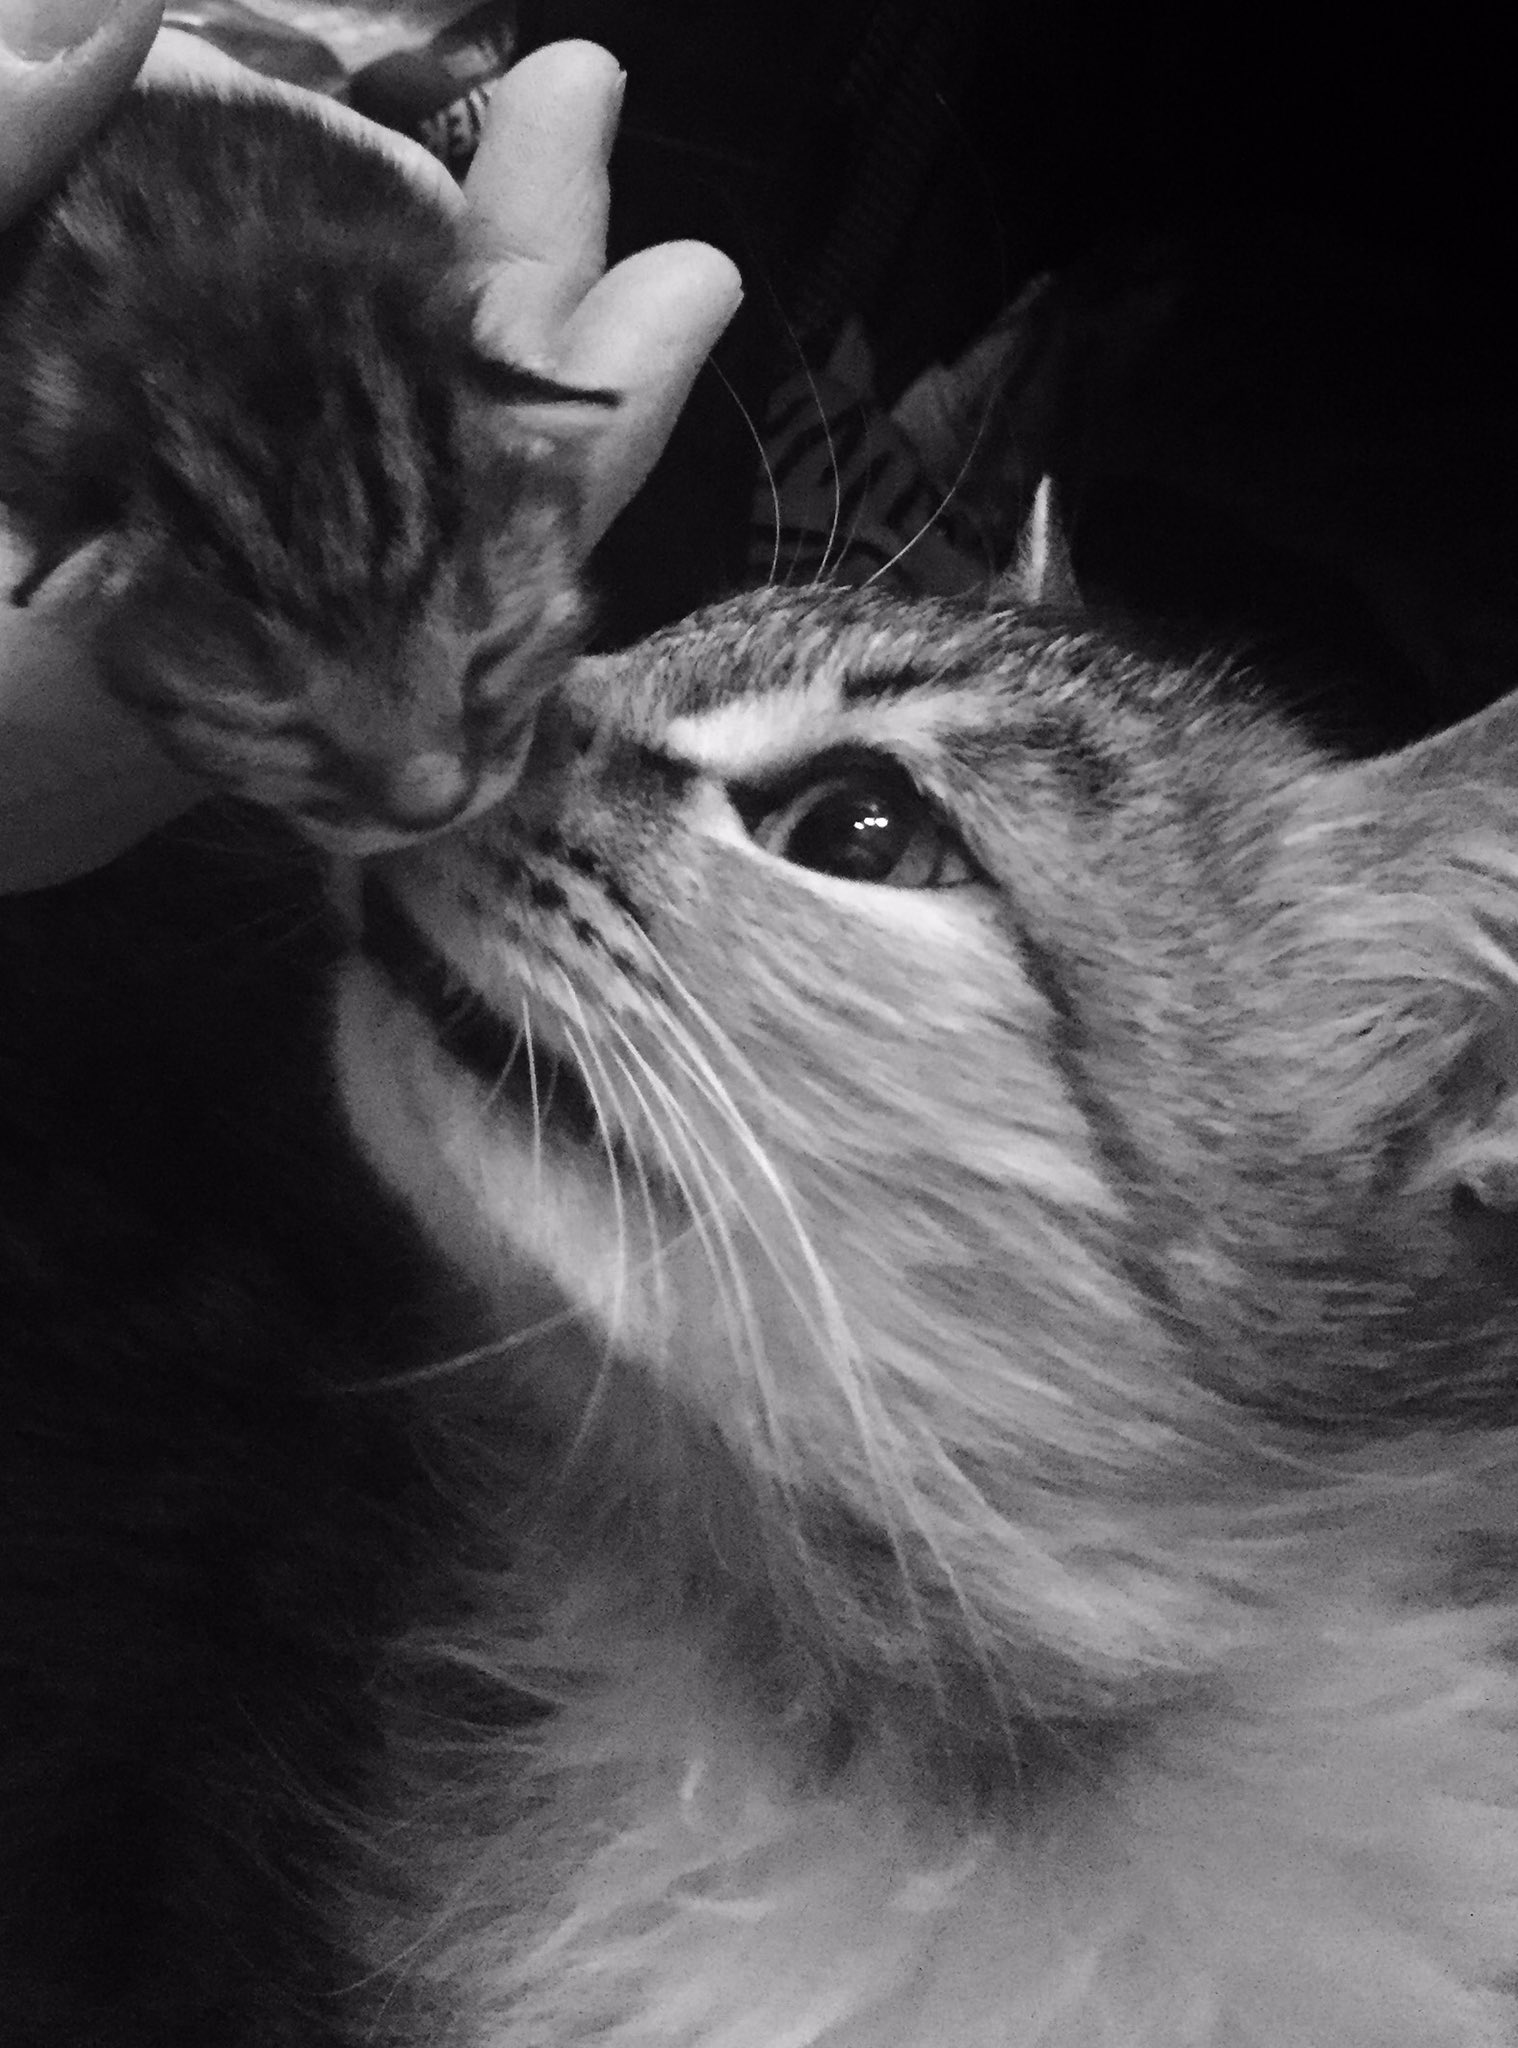 RT @KittensCam: Esme and #Prince a few minutes after his birth, and again at 6 weeks old https://t.co/1l5WK4NE9V